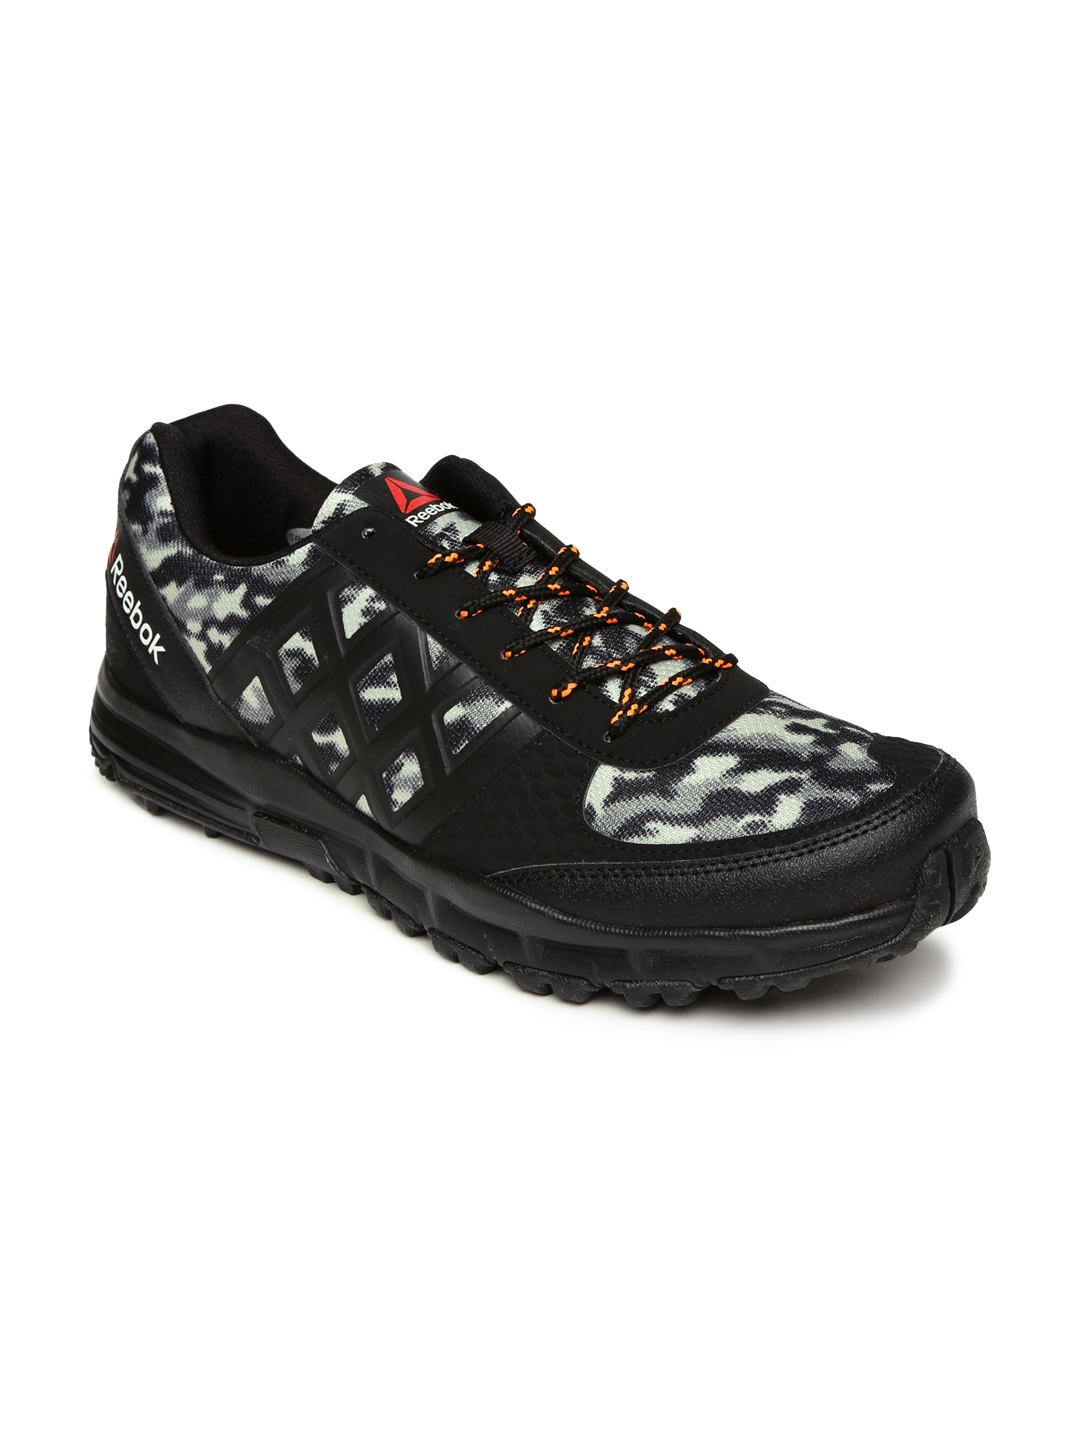 Buy Reebok Men Black   Grey Camo Trek Walking Shoes - Sports Shoes ... 164f41ffc